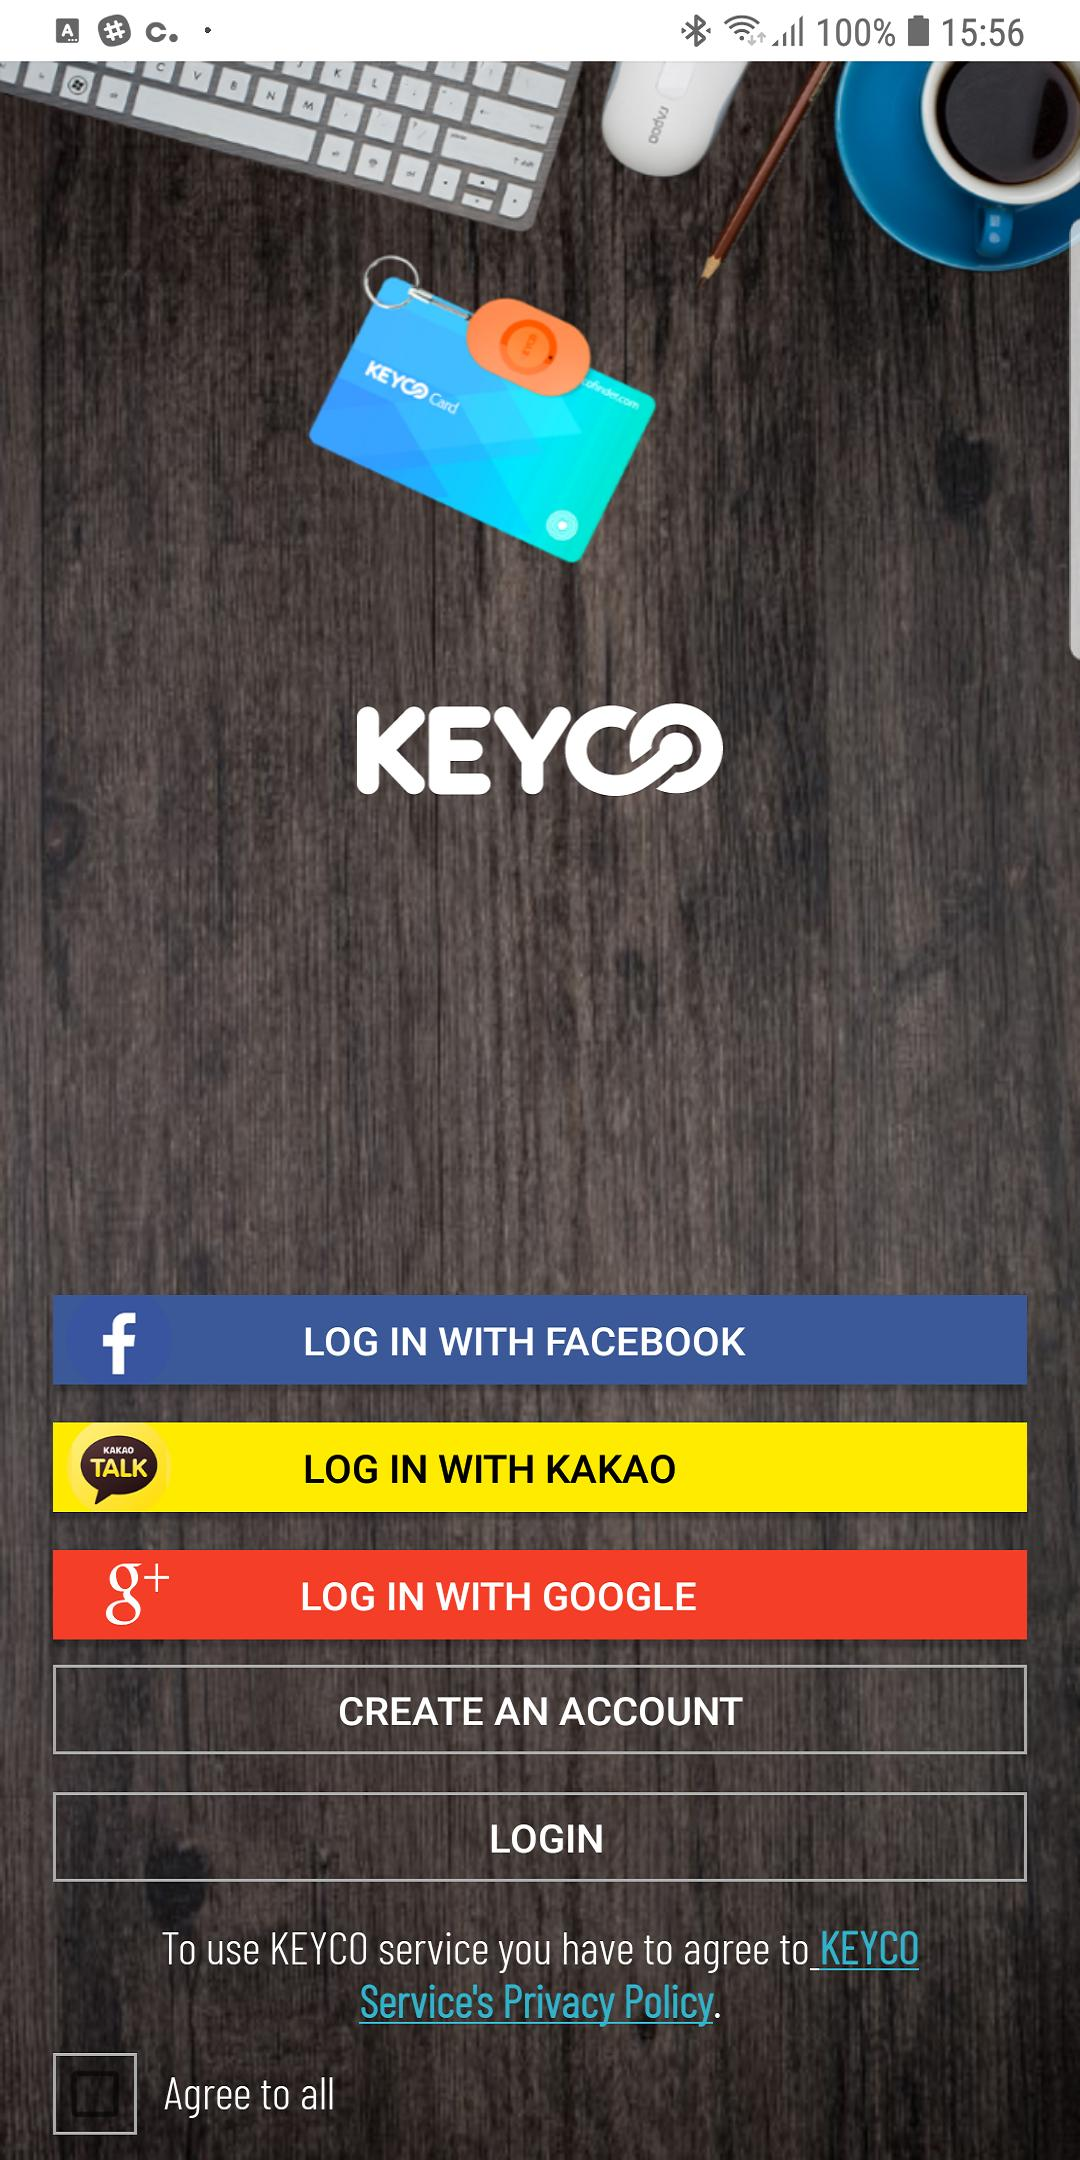 KEYCO Finder for Android - APK Download